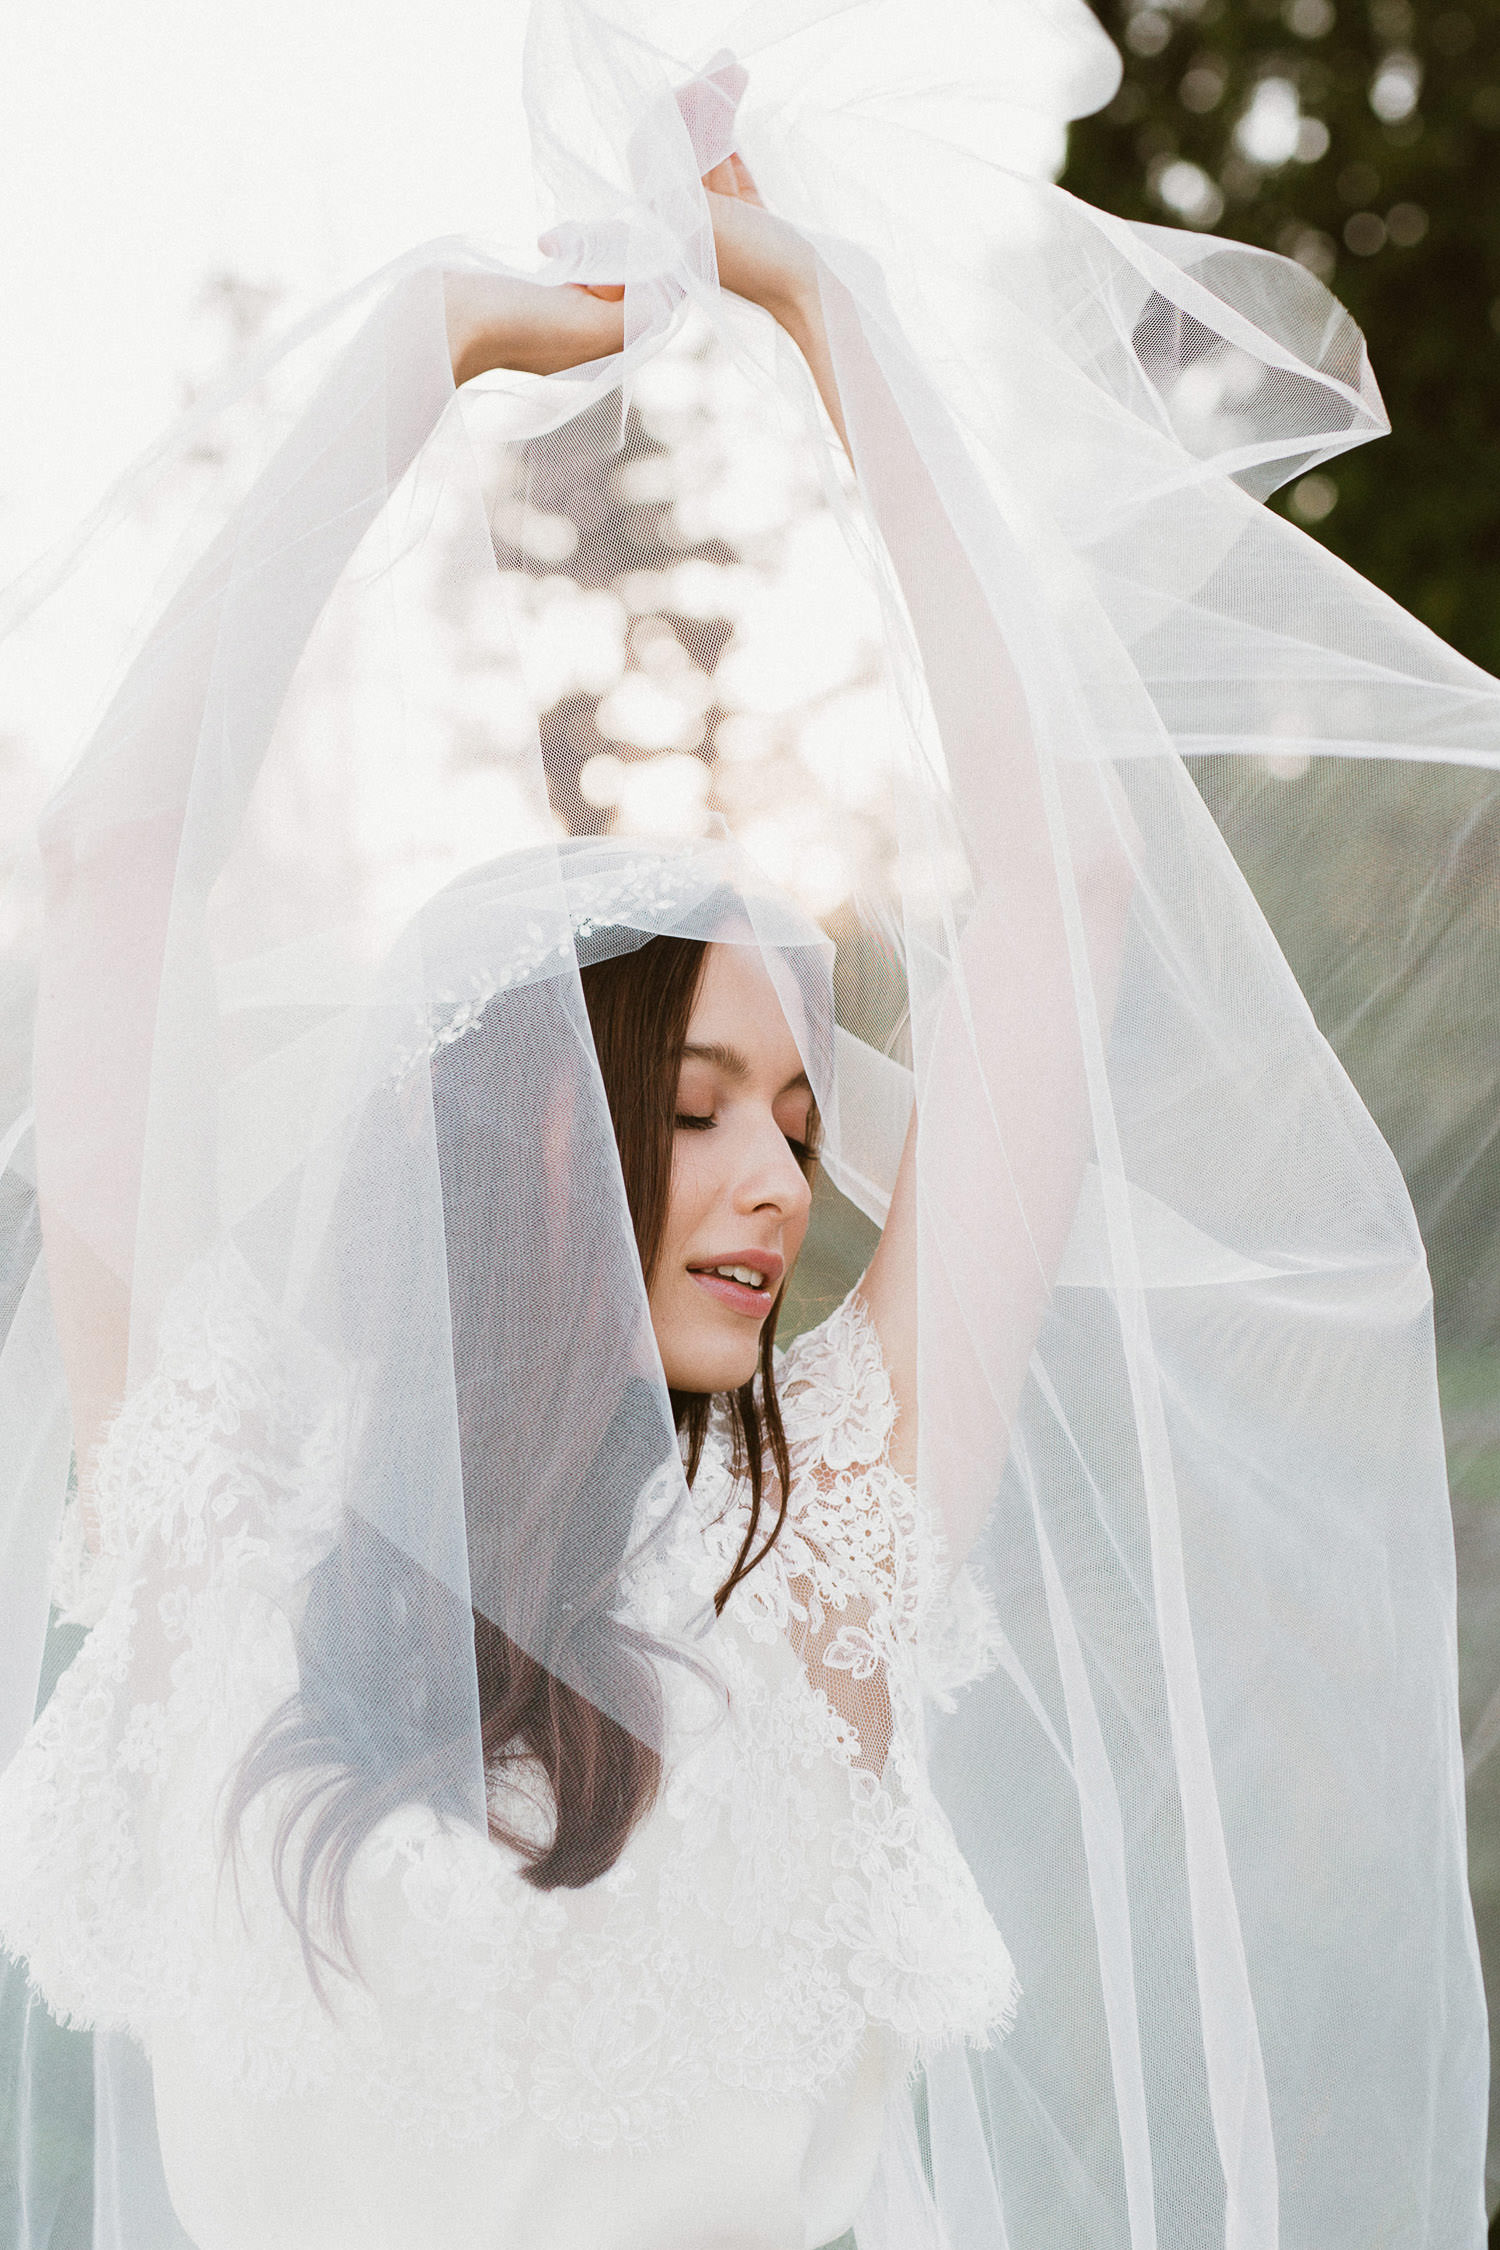 Bohemian bride with delicate veil - Boho elopement | photo: Camilla Anchisi